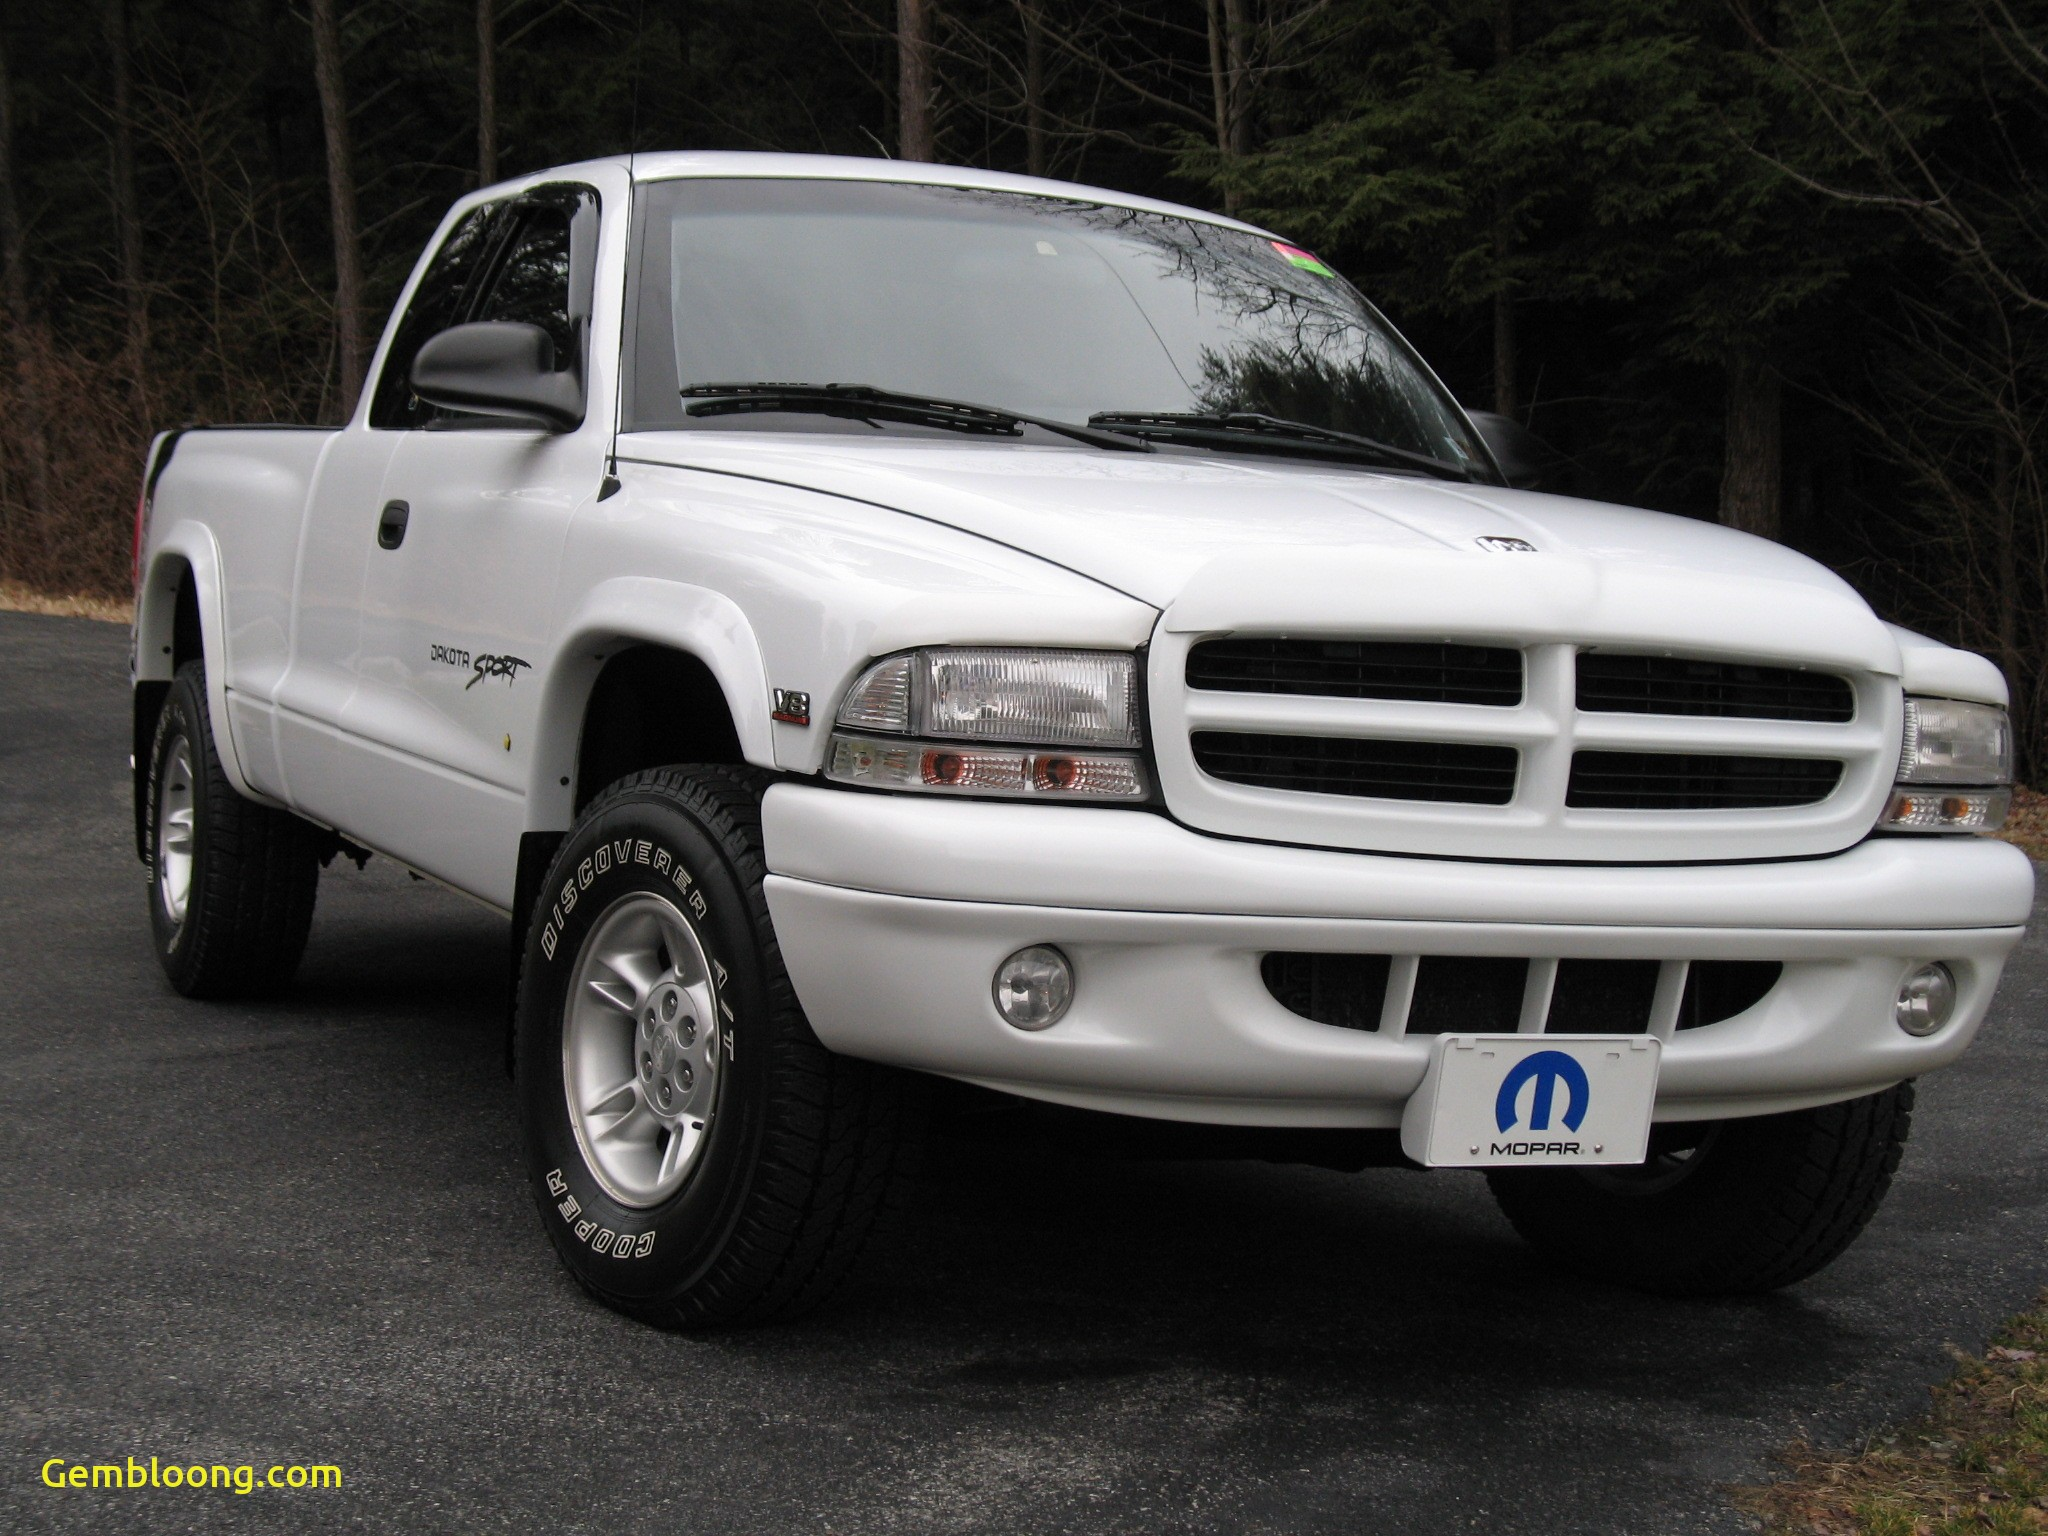 2005 Dodge Dakota Luxury totm Post Your Best Pic for Nomination Consideration